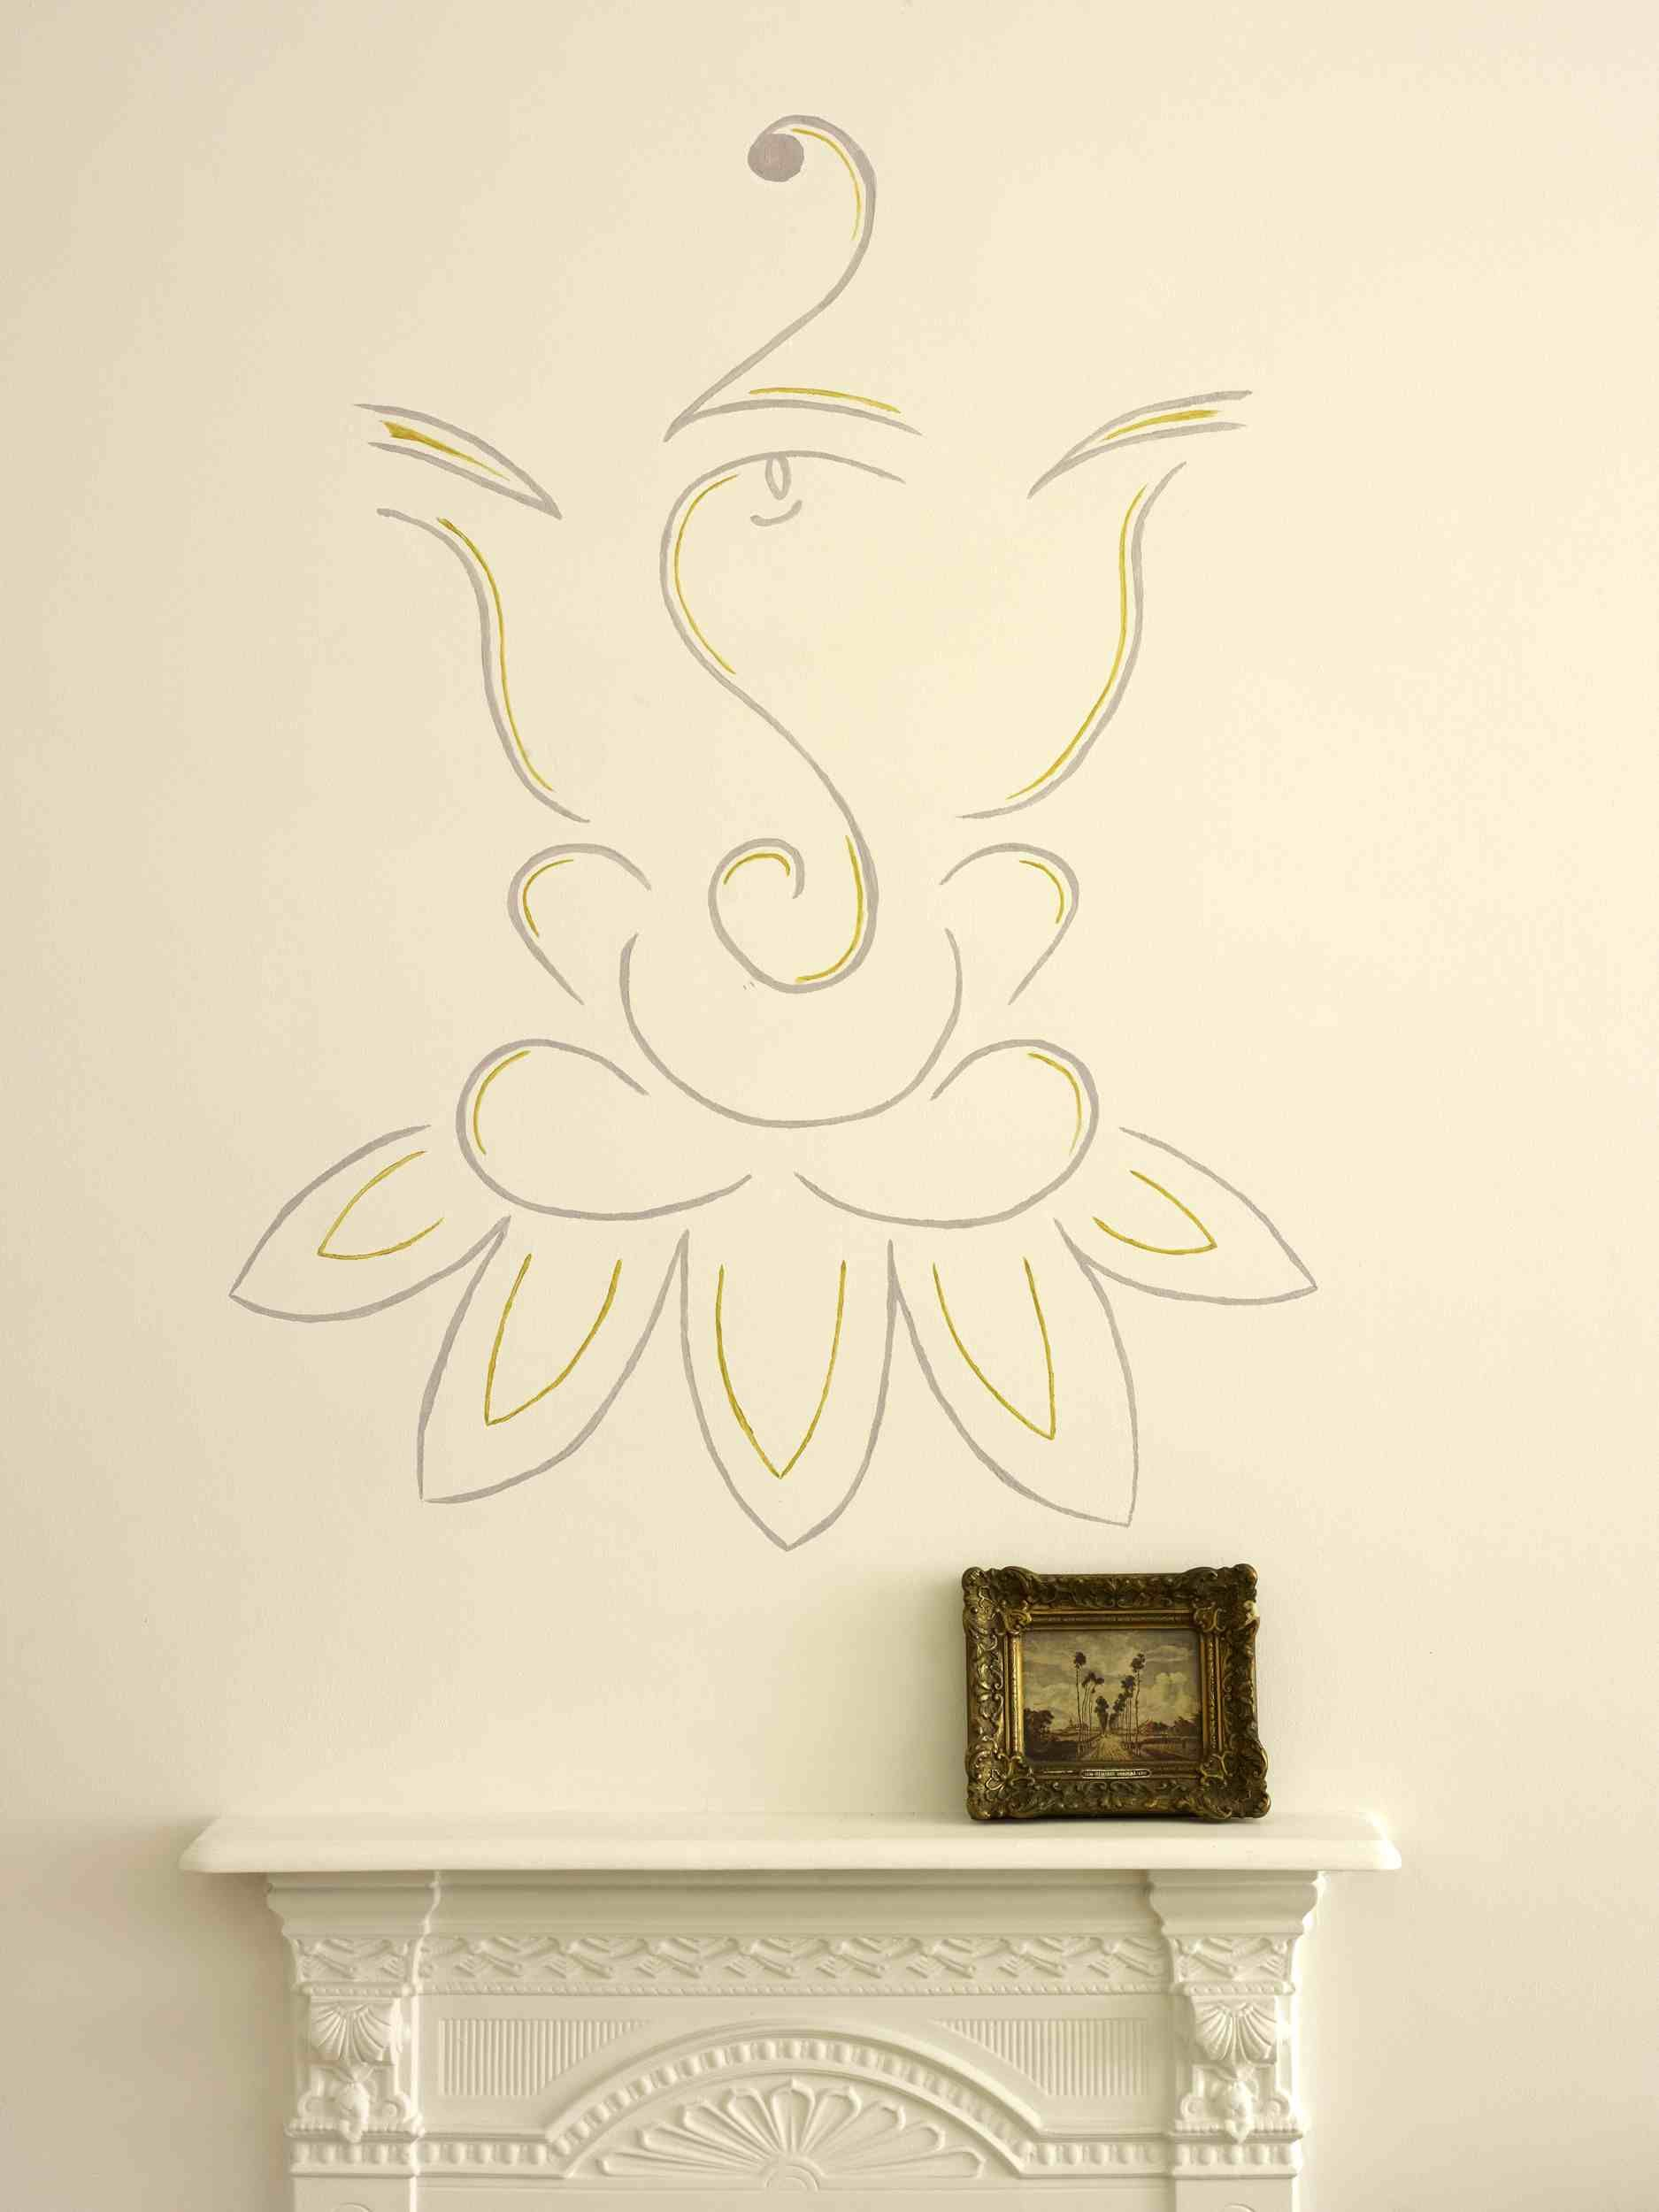 Simple line drawing of haand painted ganesh in anita kaushals house www anitakaushal